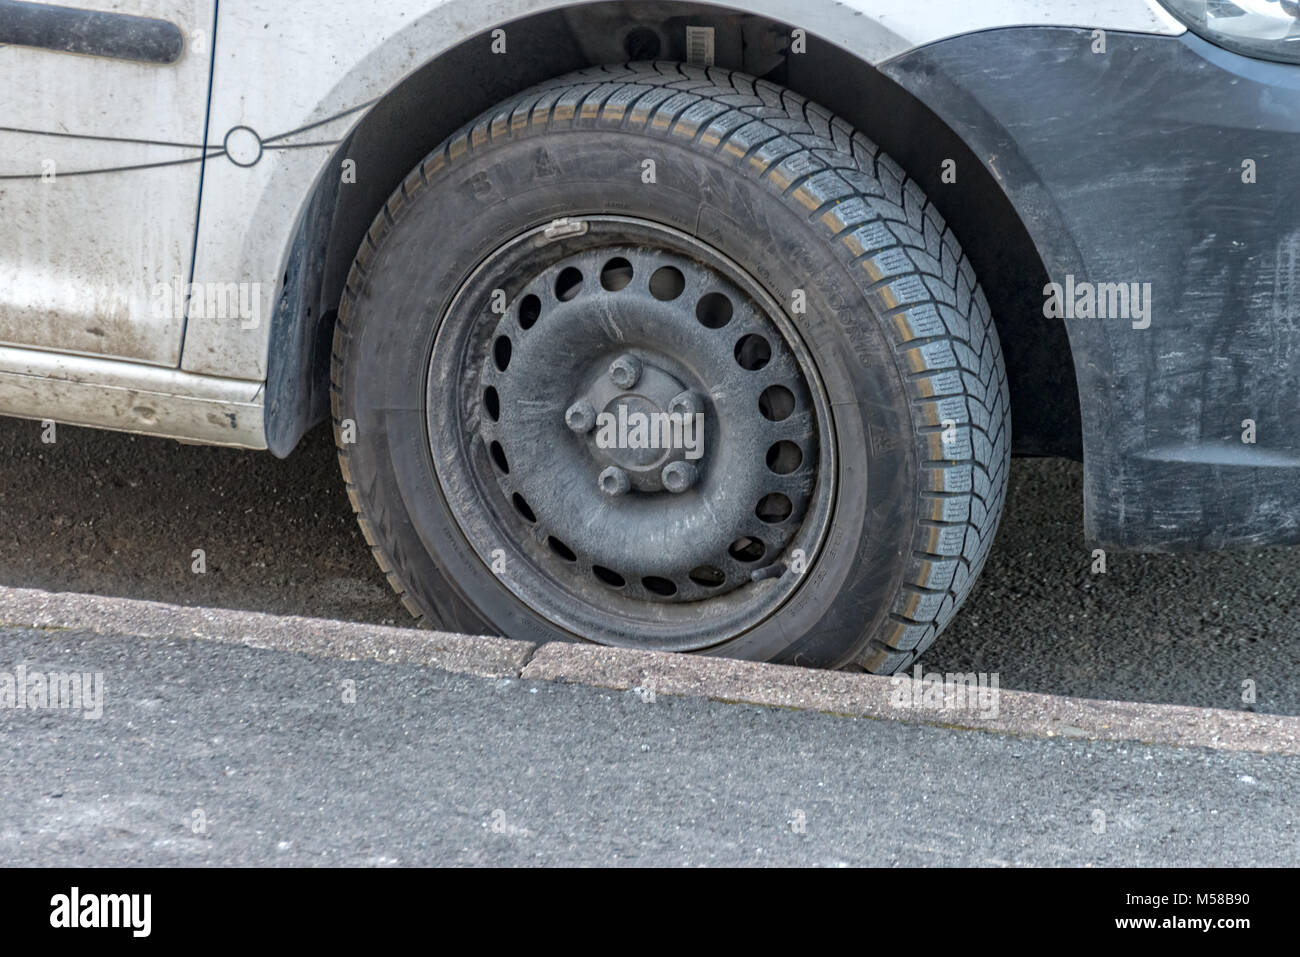 Worn winter car tire at a parked car - Stock Image